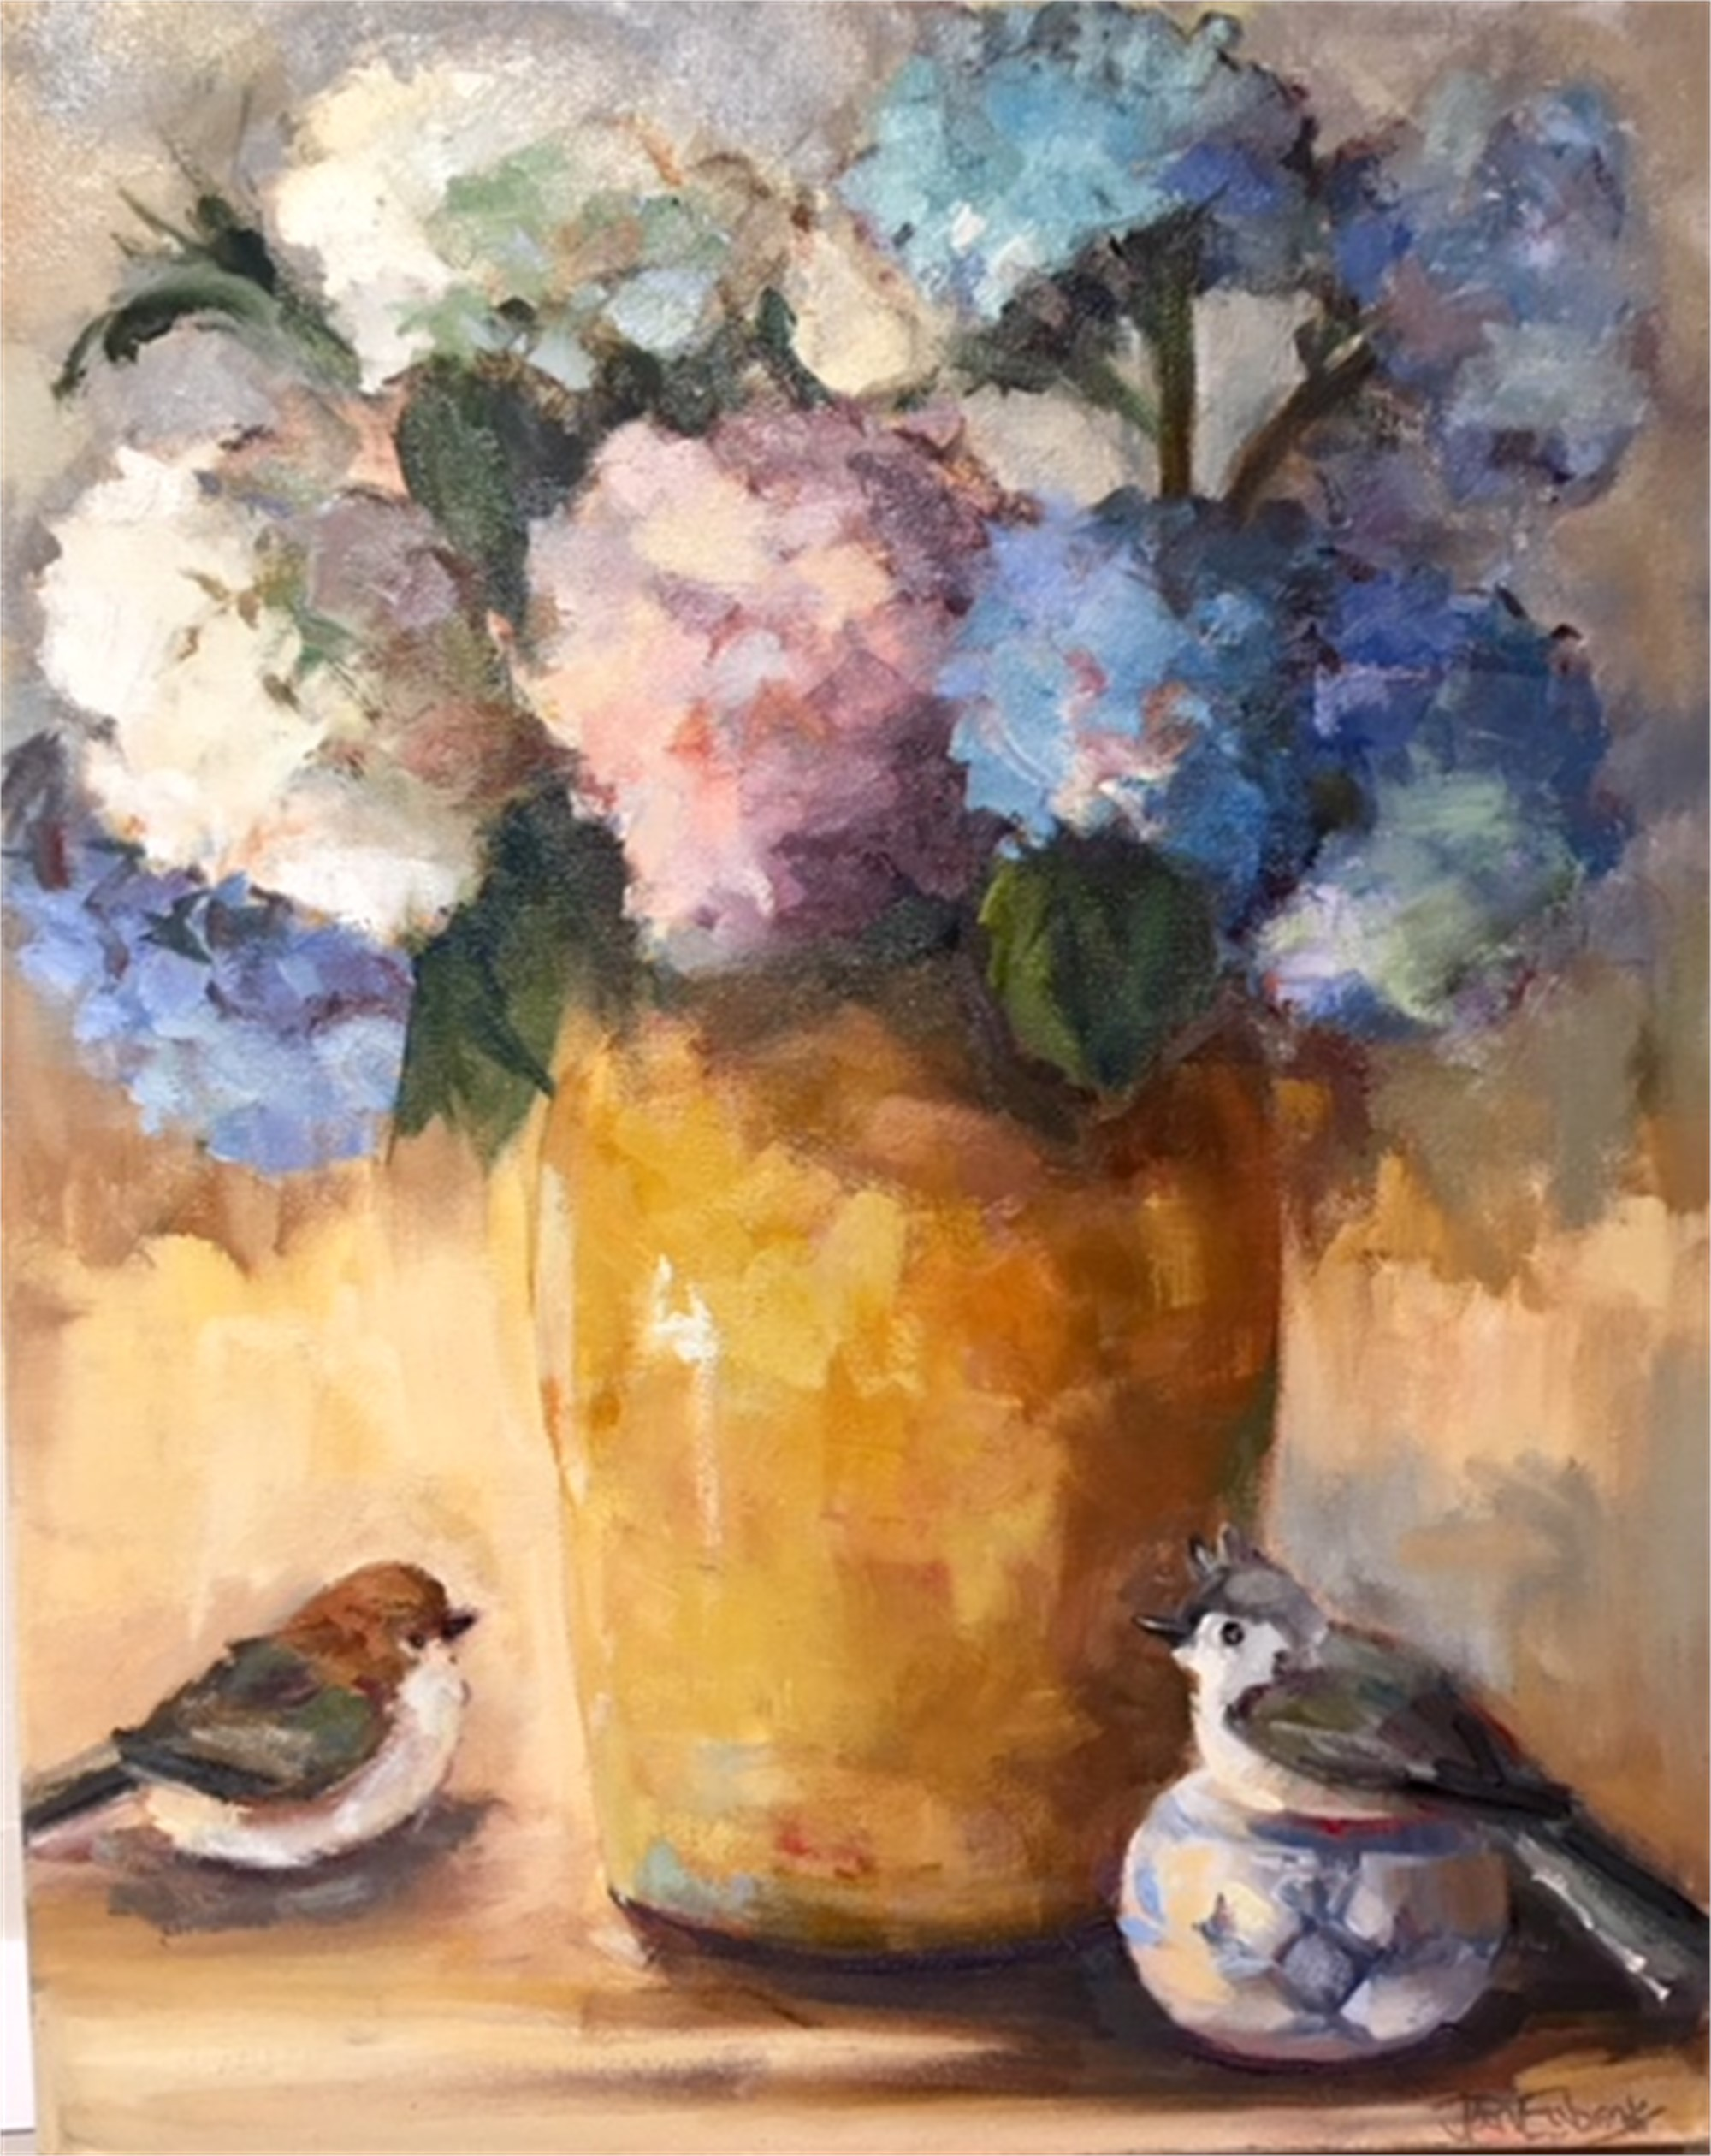 Birds and Flowers by Jan Eubanks